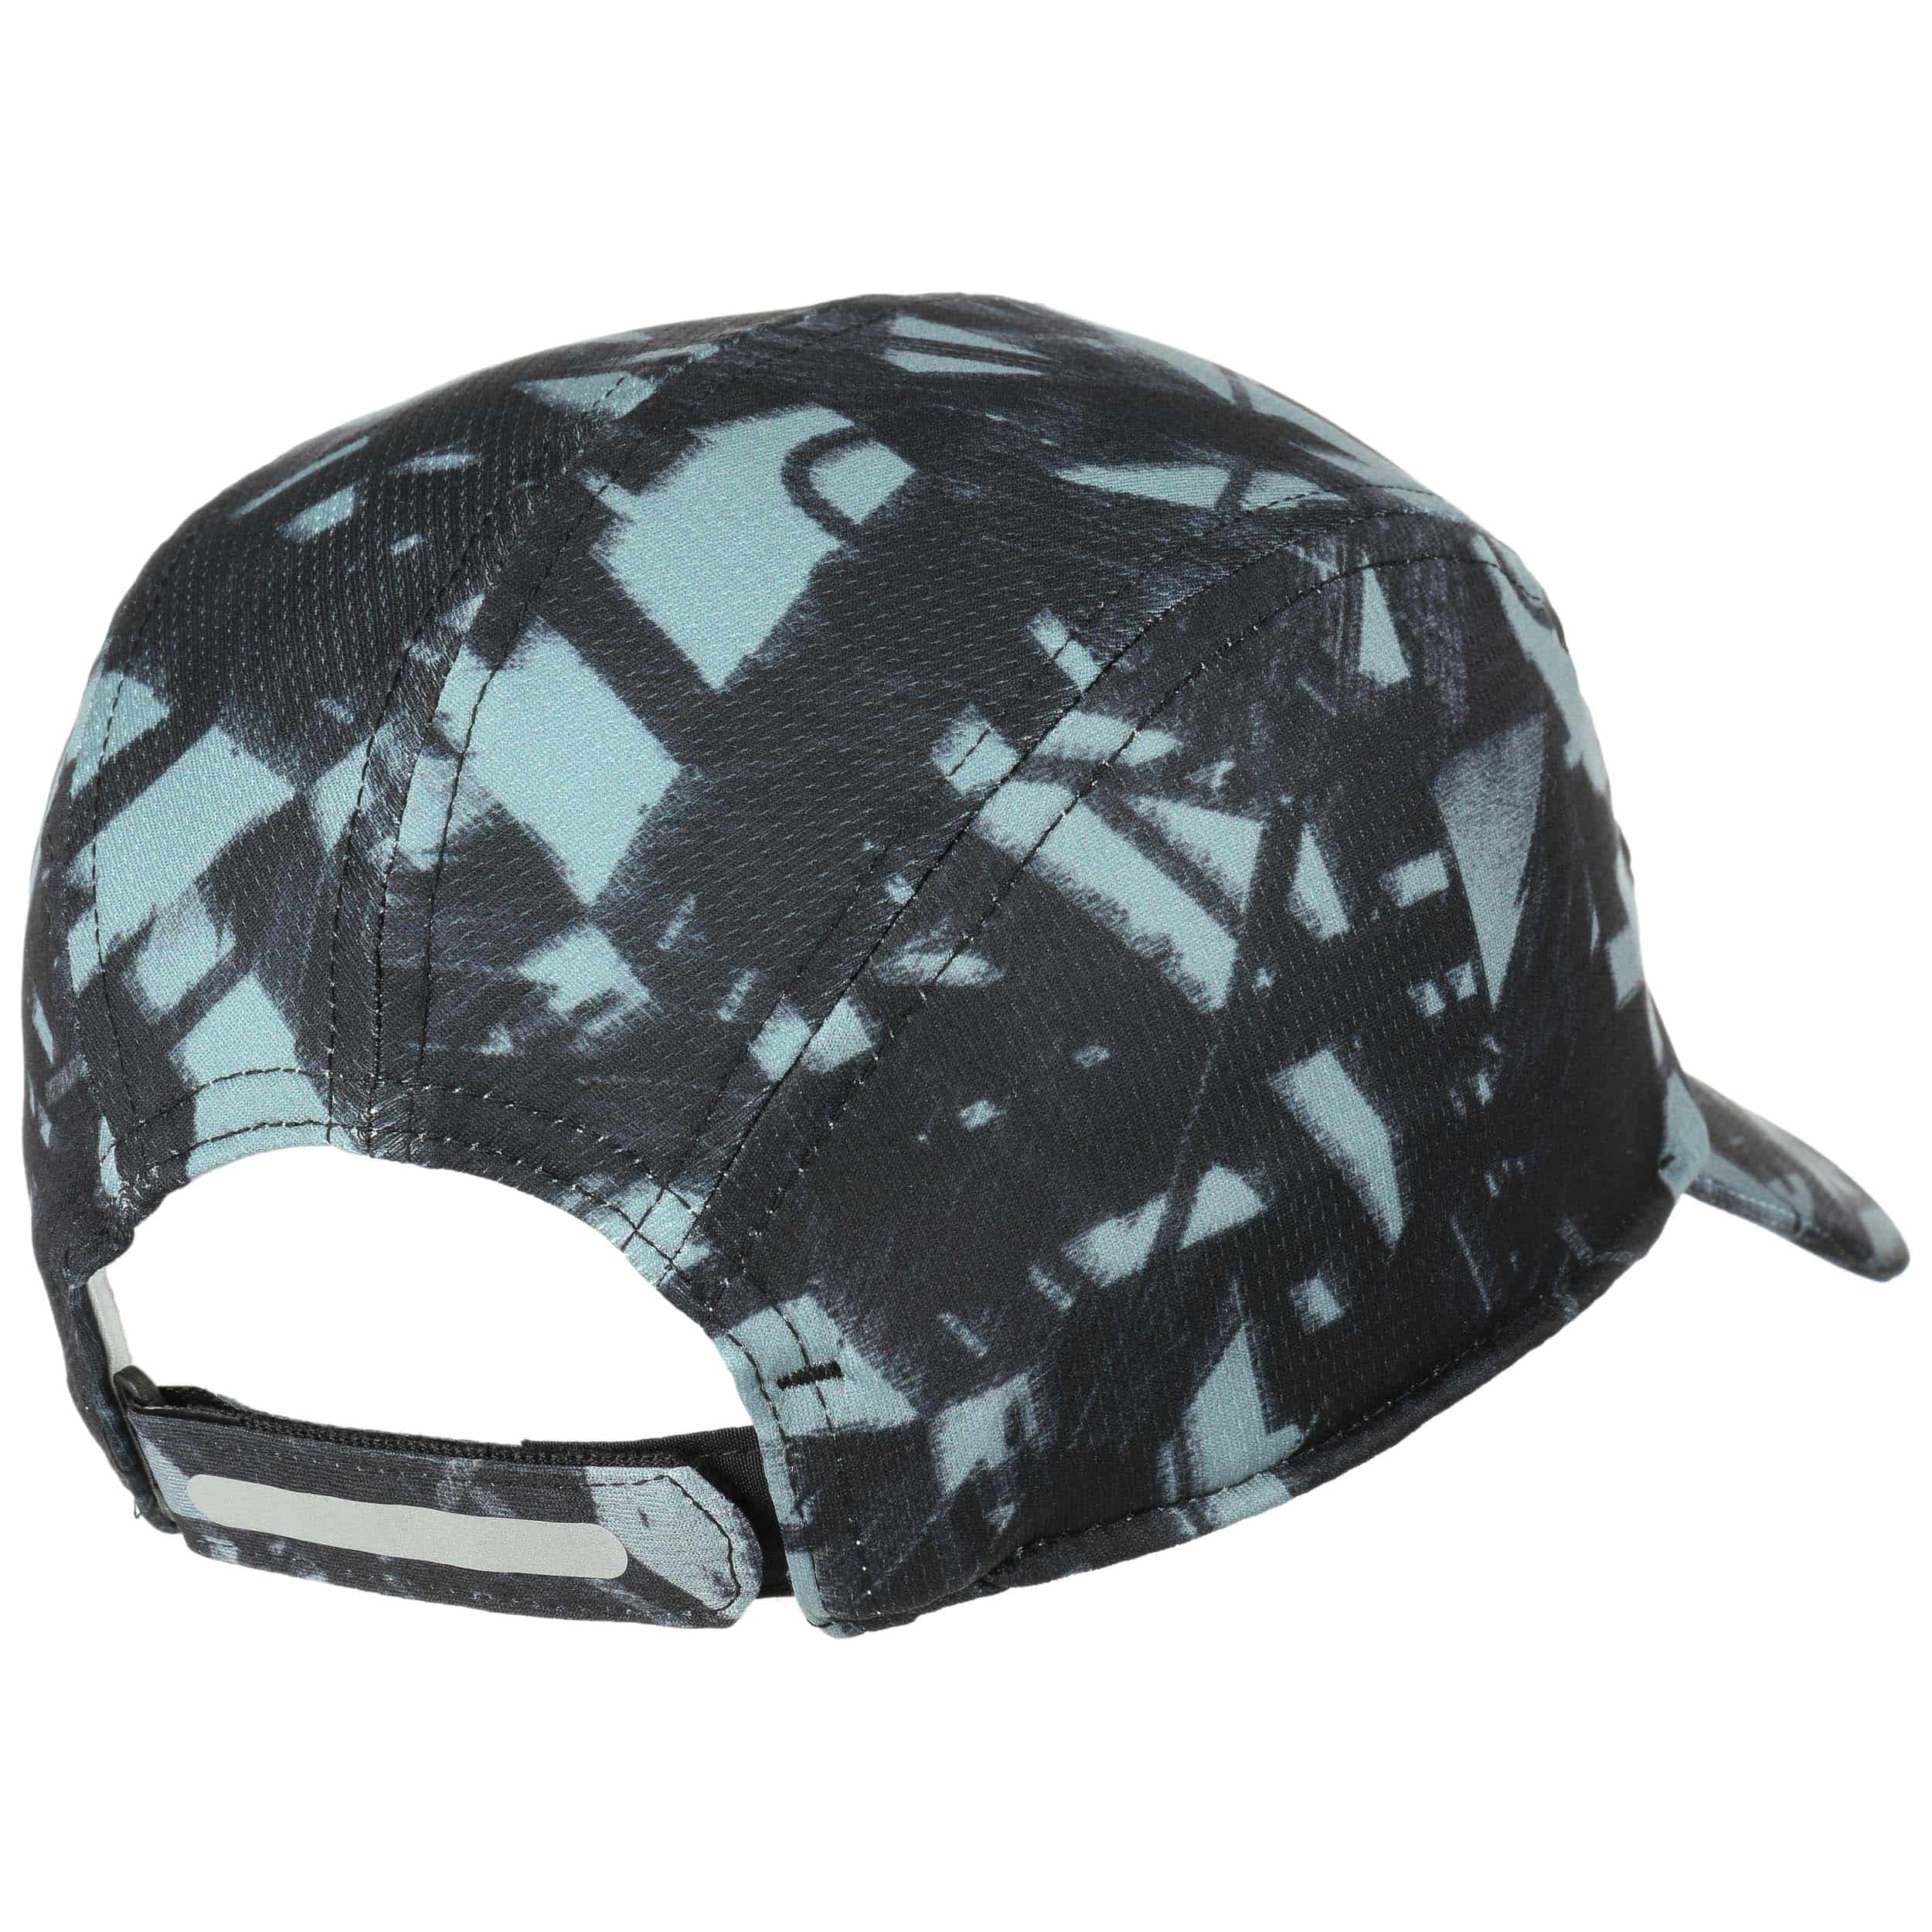 Gorra Climacool Graphic Running by adidas - Gorras - sombreroshop.es aebe853b97e